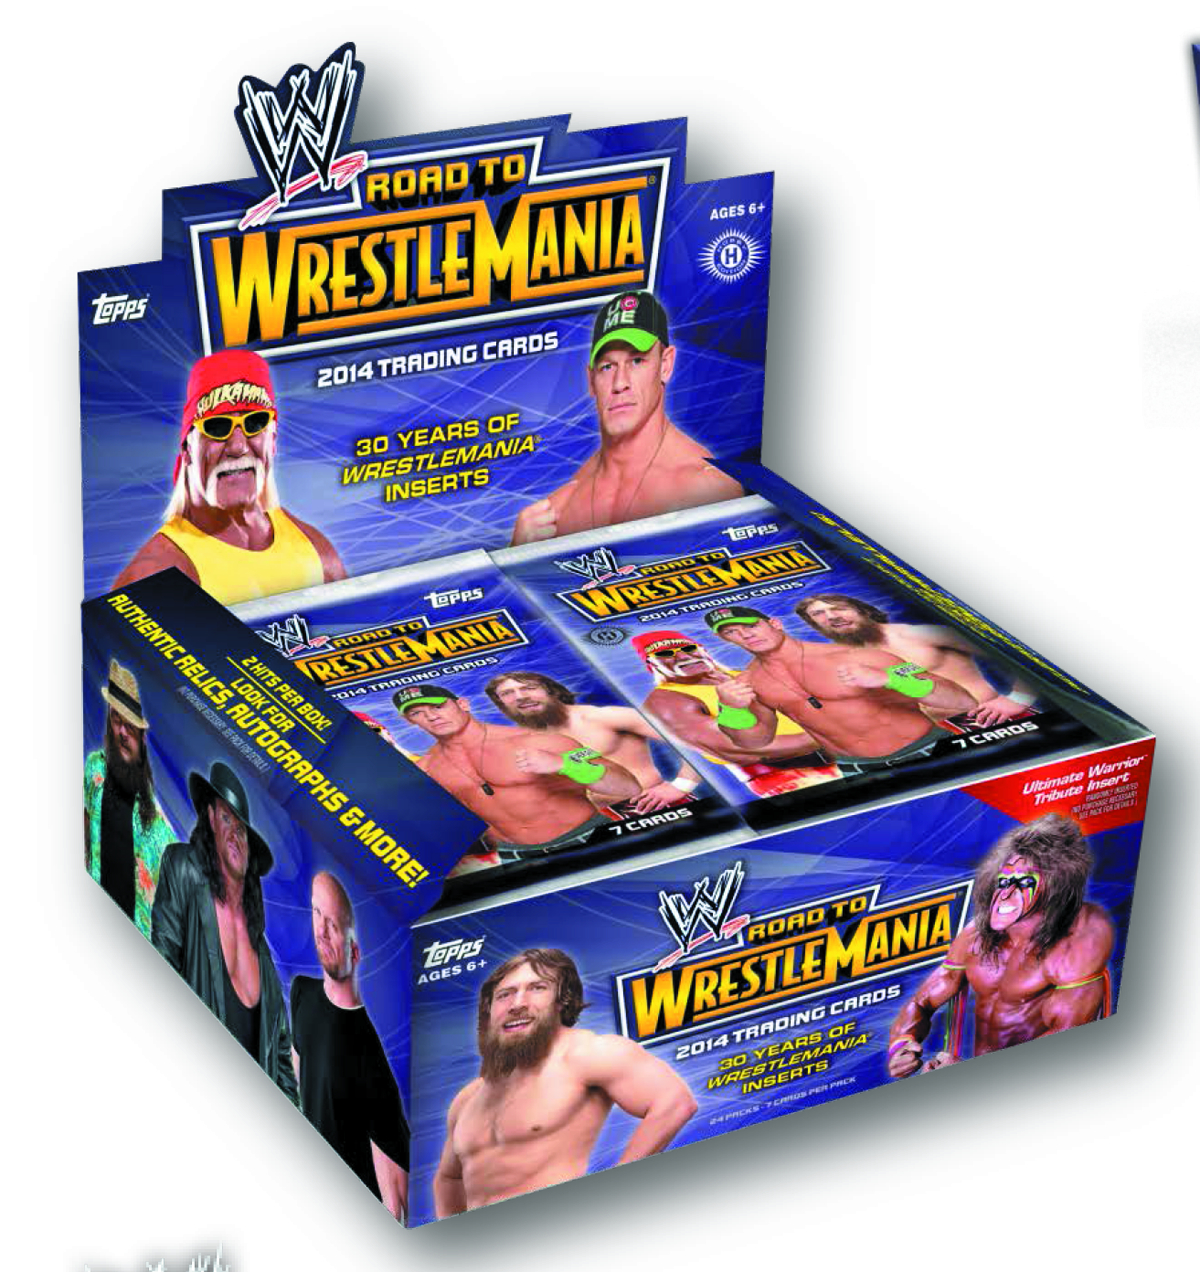 TOPPS 2014 WWE ROAD TO WRESTLEMANIA T/C BOX